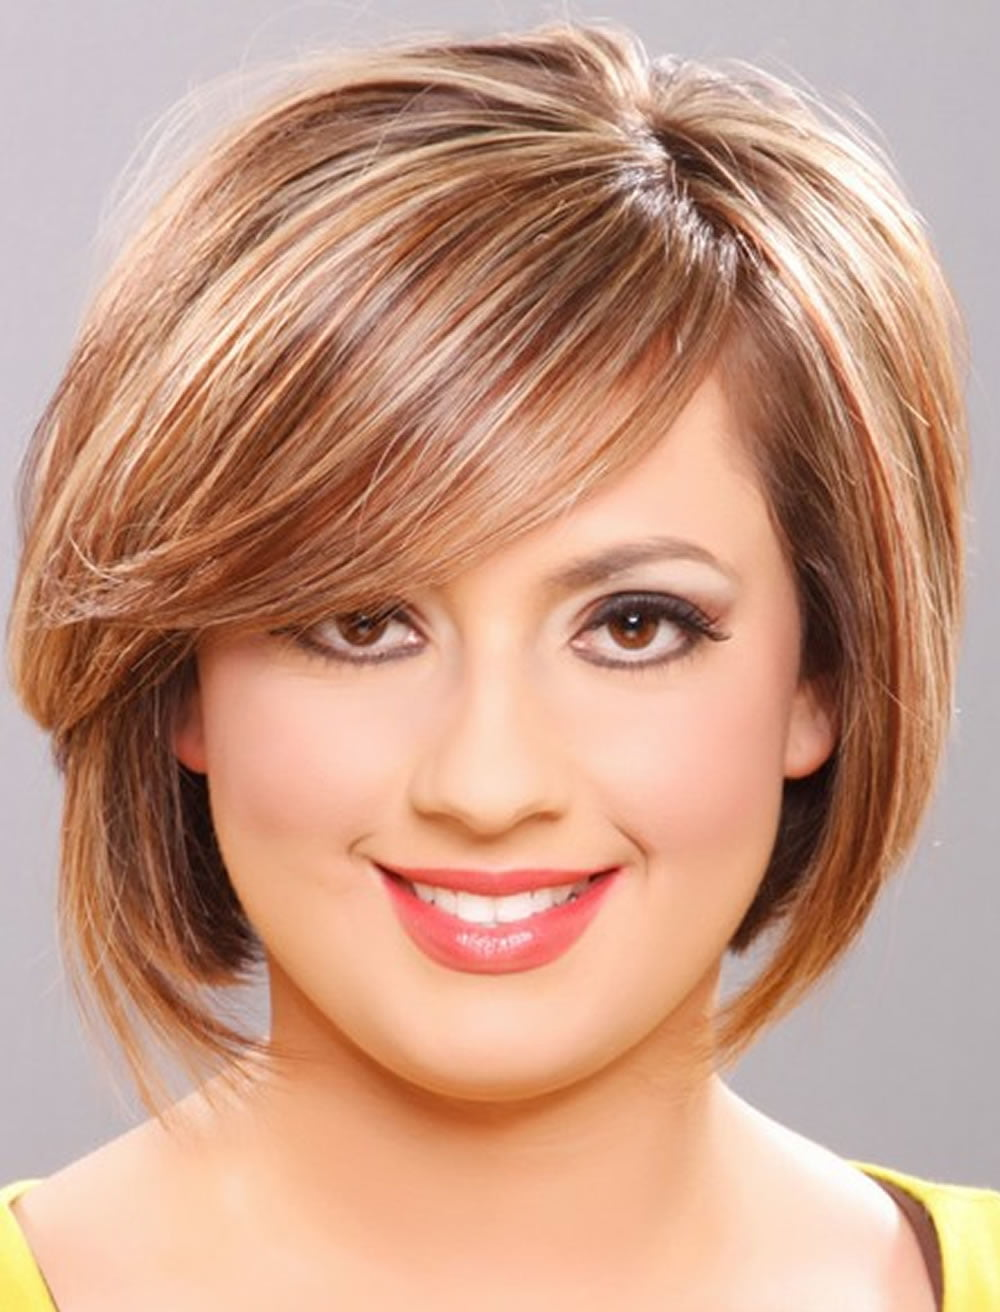 Short haircuts for round face thin hair ideas for 2018 page 3 of 4 short haircuts for round face thin hair ideas for 2018 winobraniefo Image collections